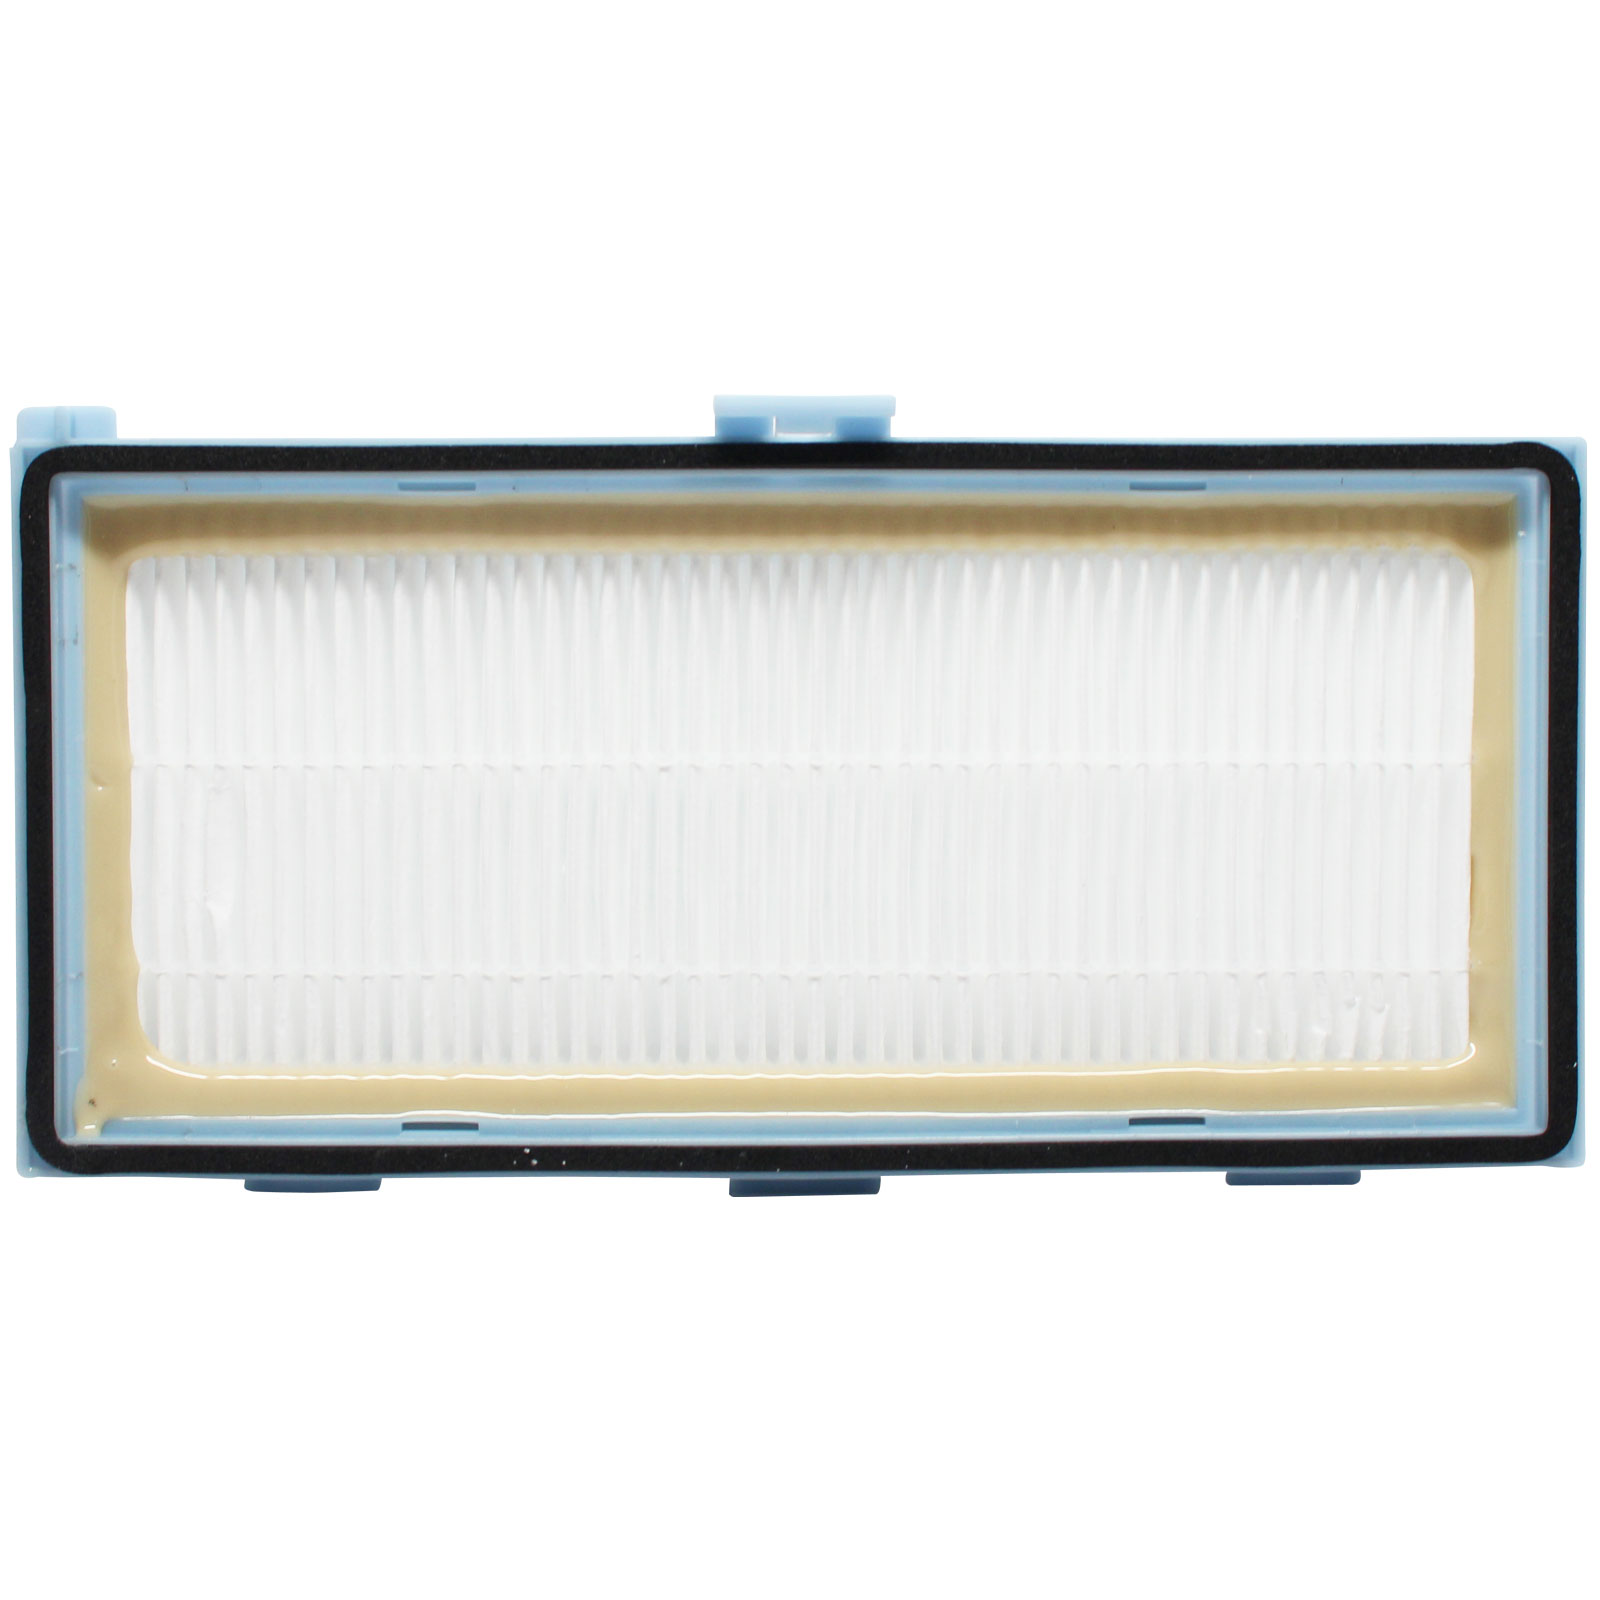 Replacement Miele S514i Solaris Electro Vacuum HEPA Filter - Compatible Miele SF-AH 30, SF-HA 30, AH30 HEPA Filter - image 2 de 4